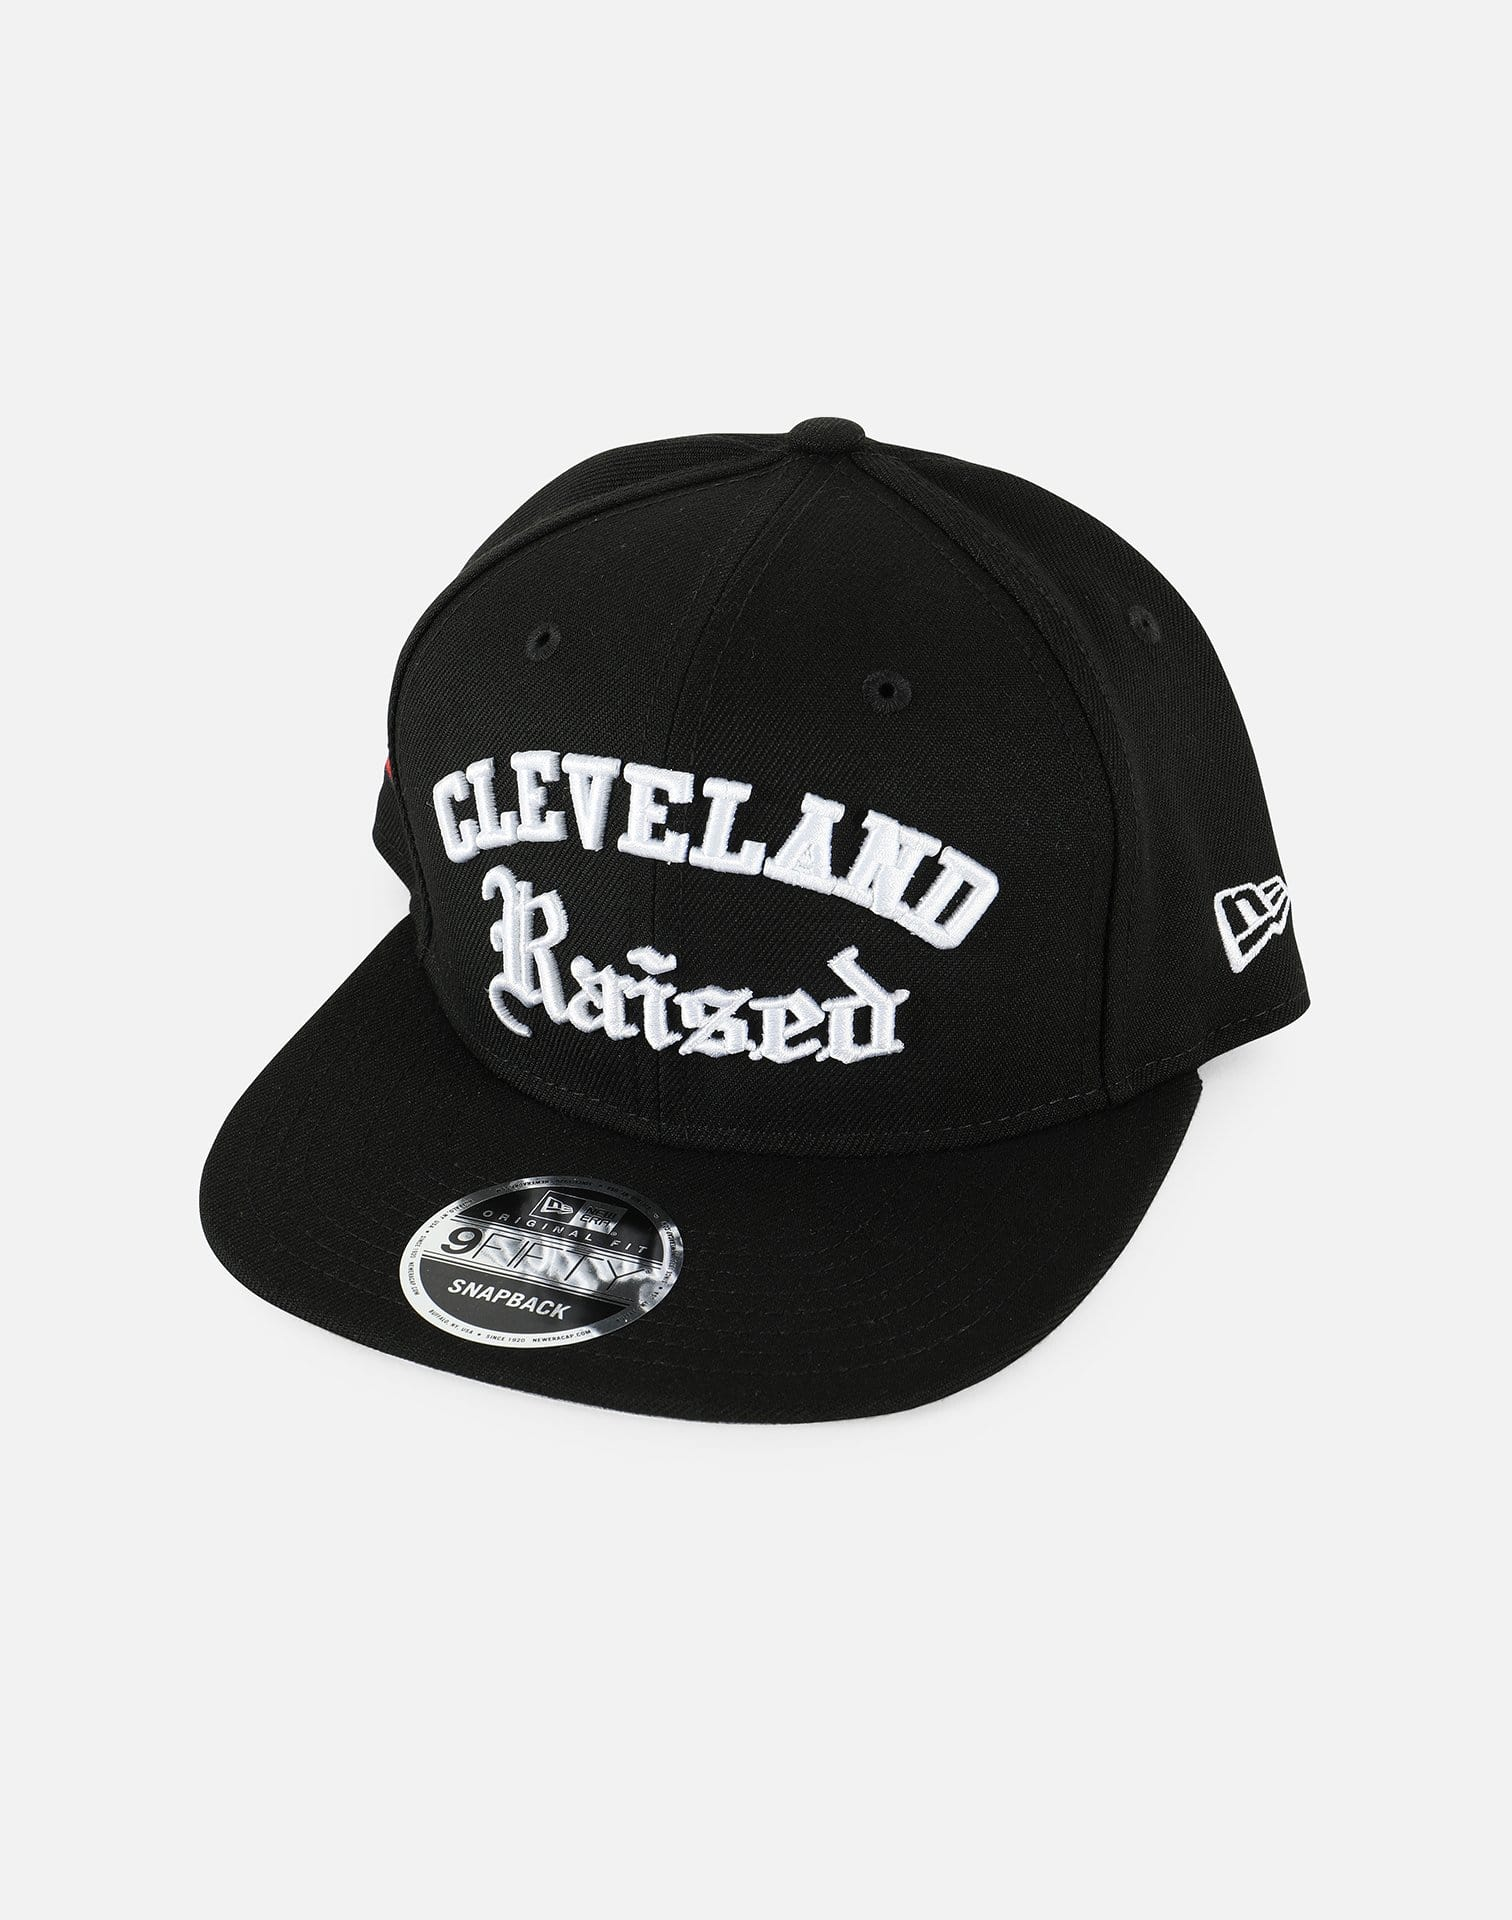 New Era Cleveland Raised Deluxe Snapback Hat